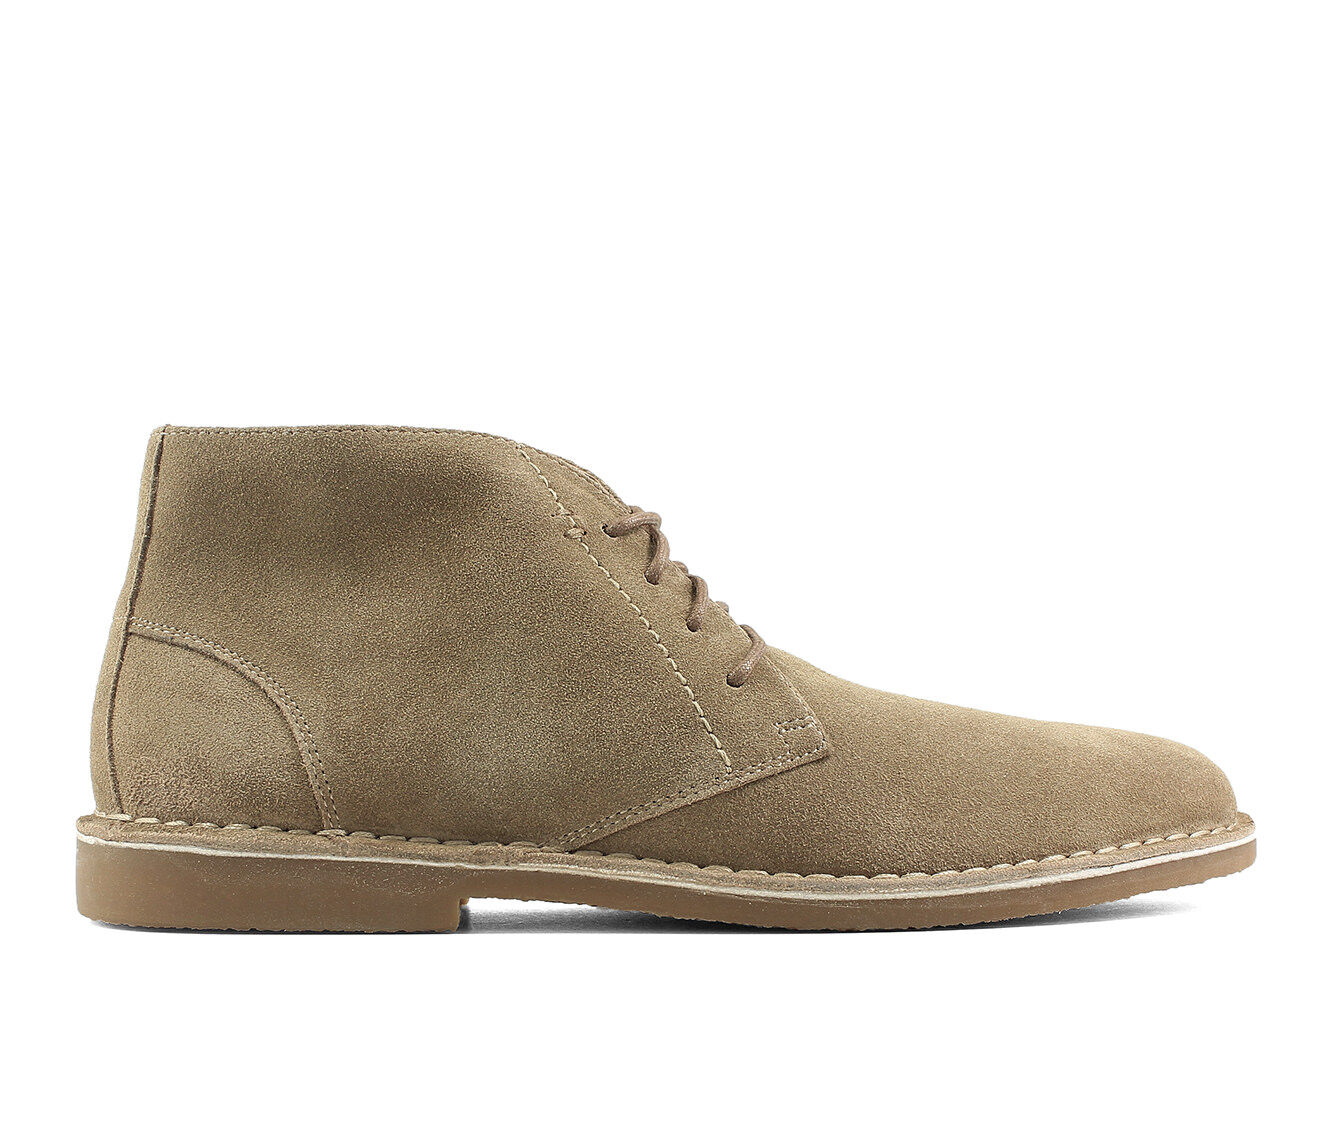 find authentic cheap Men's Nunn Bush Galloway Plain Toe Chukka Boots Beige